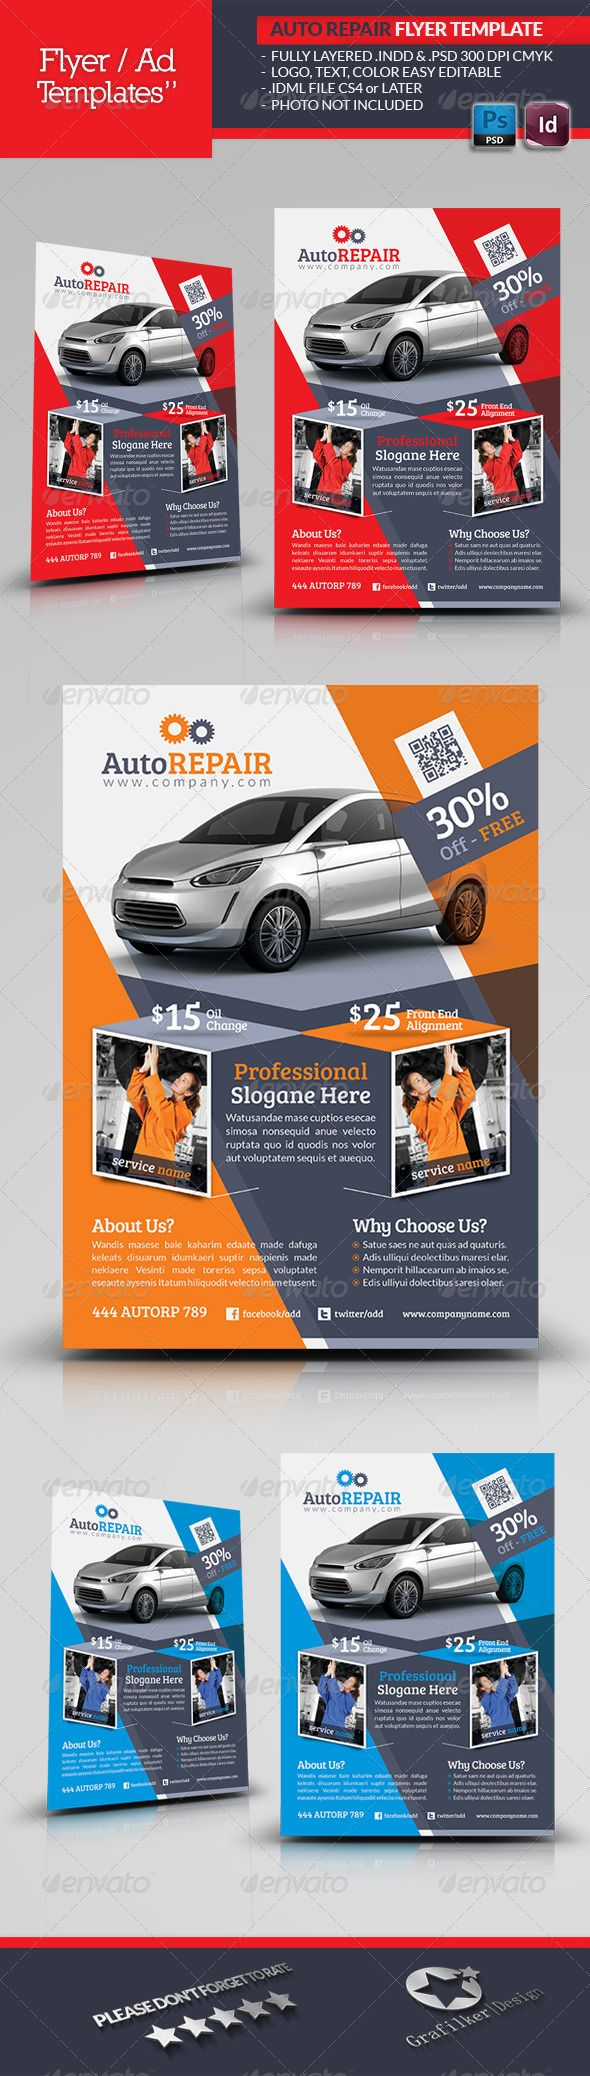 automobile repair flyer template flyer template vector format automobile repair flyer template